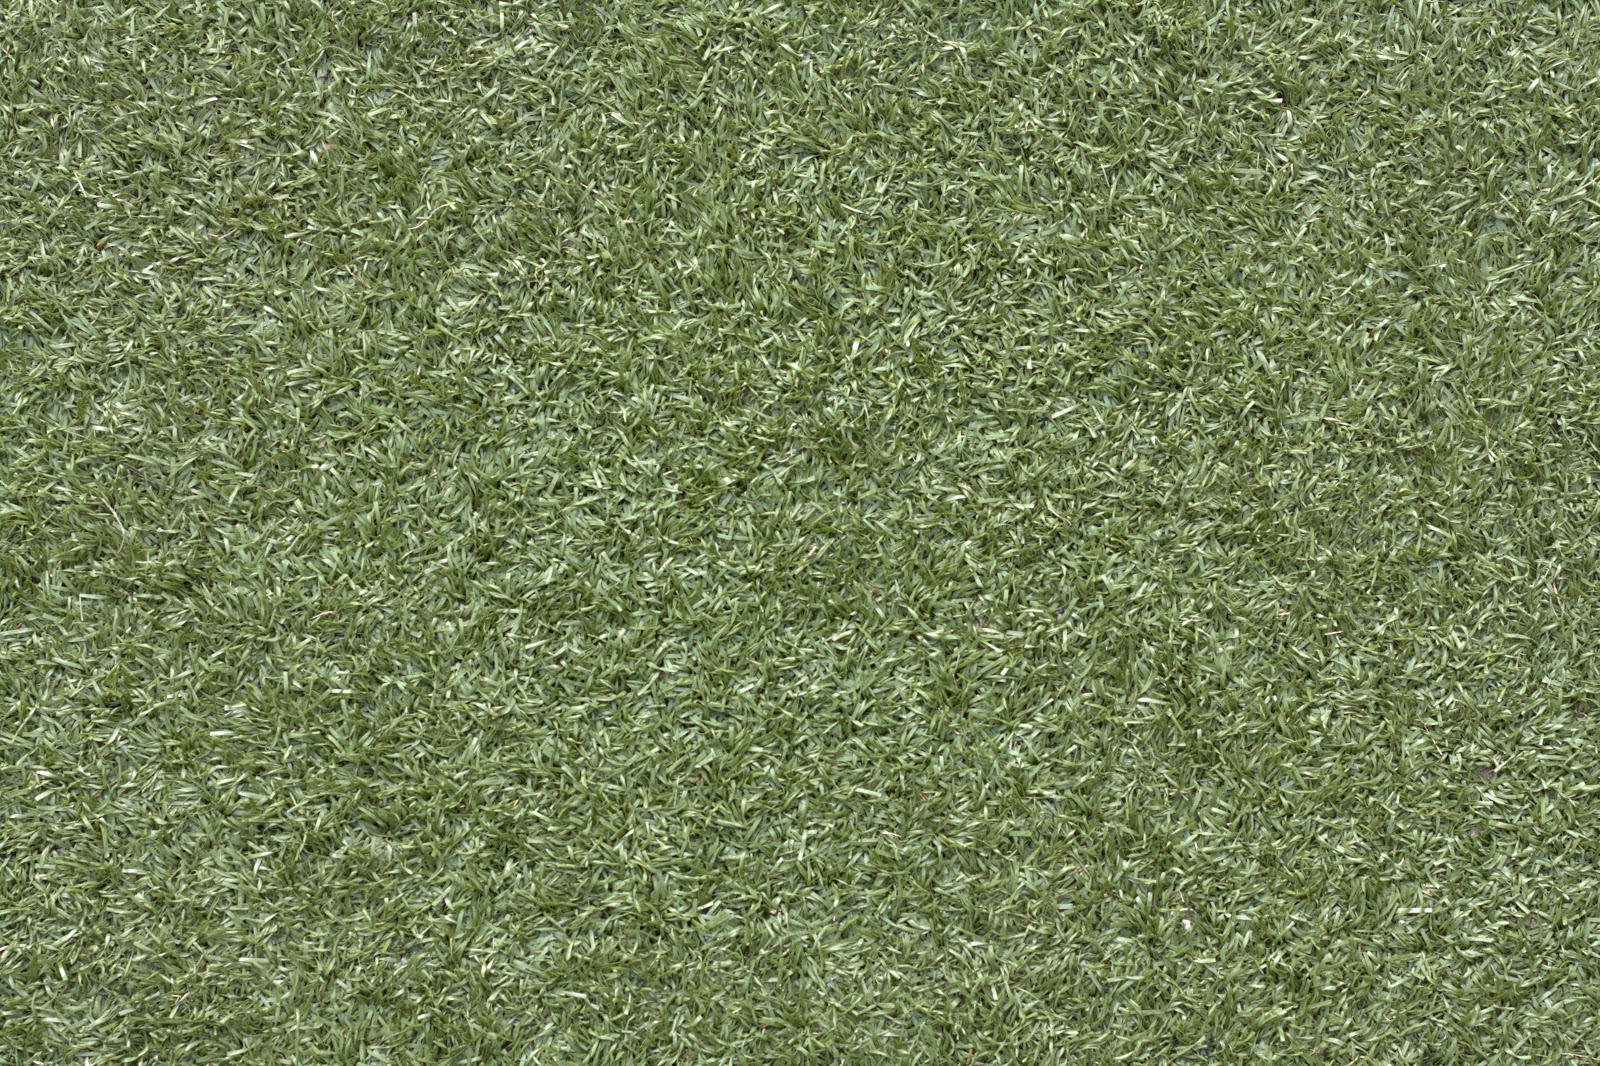 (GRASS 5) Plastic turf lawn green ground field texture 4770x3178